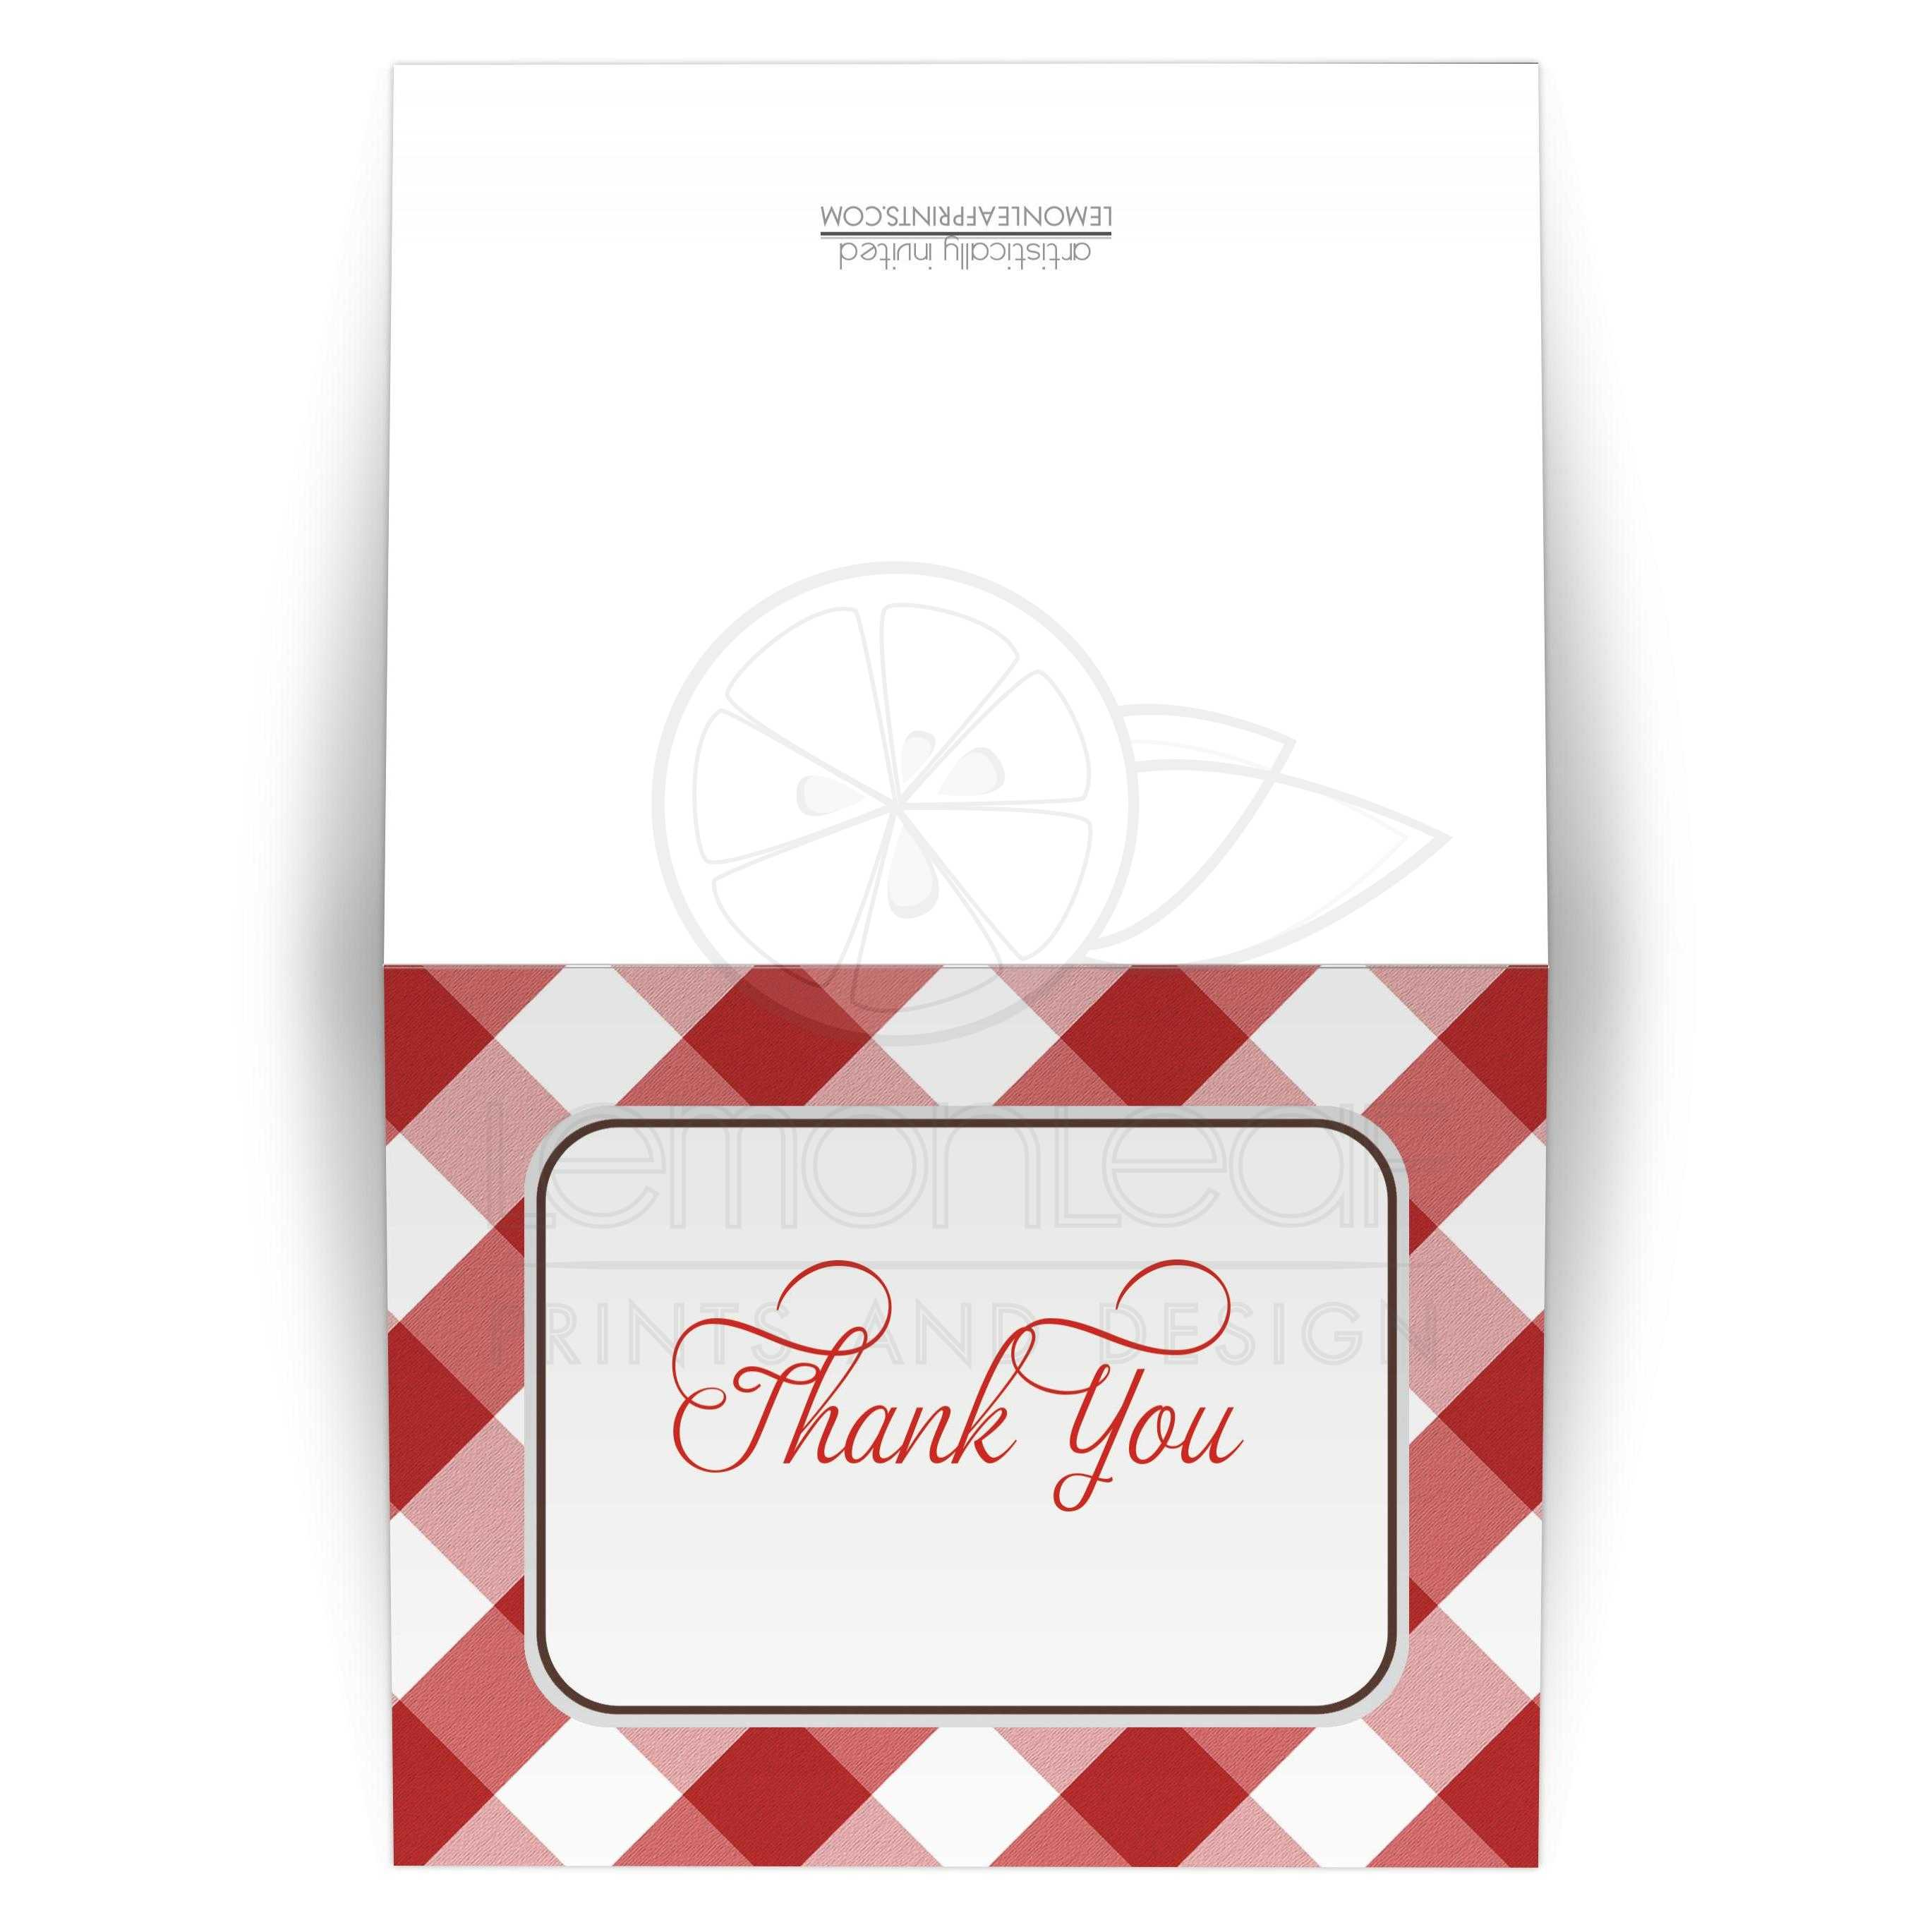 Thank You Cards Red Gingham Country